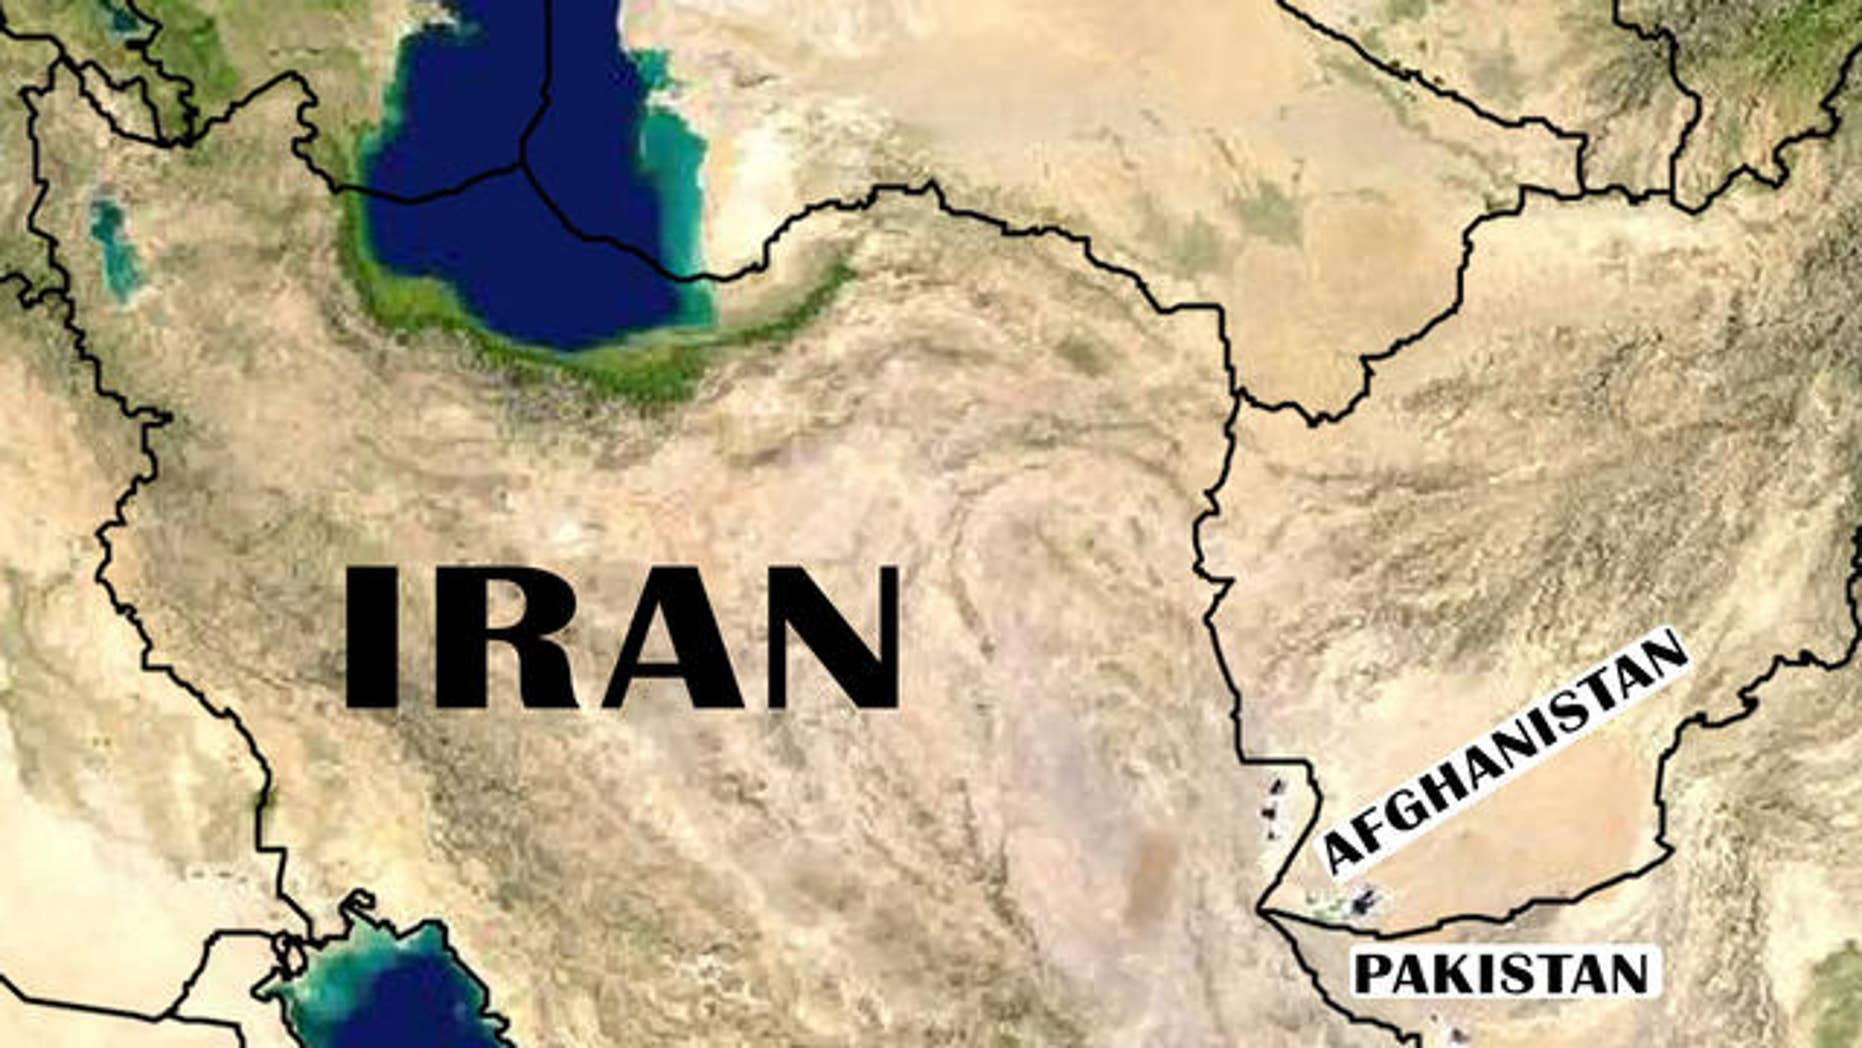 Three dead in Iran terror attack